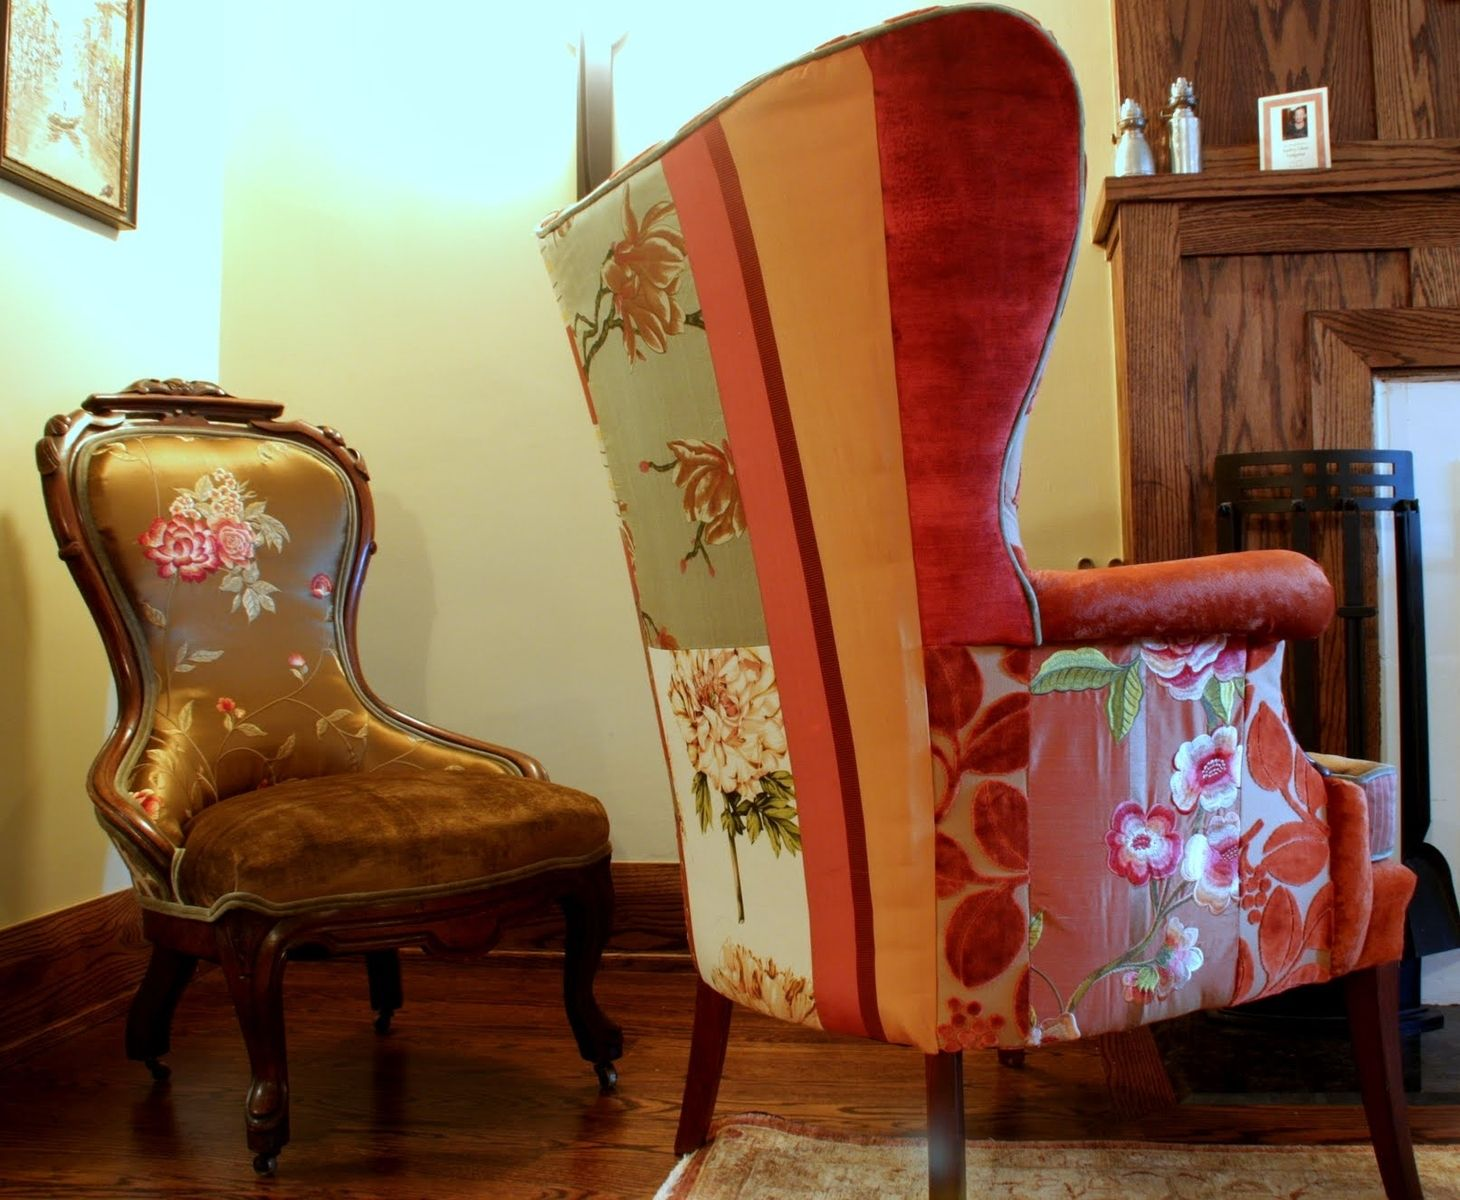 Custom Made Upholstered Antique Chairs - Custom Upholstered Antique Chairs By Jane Hall The Voice Of Style